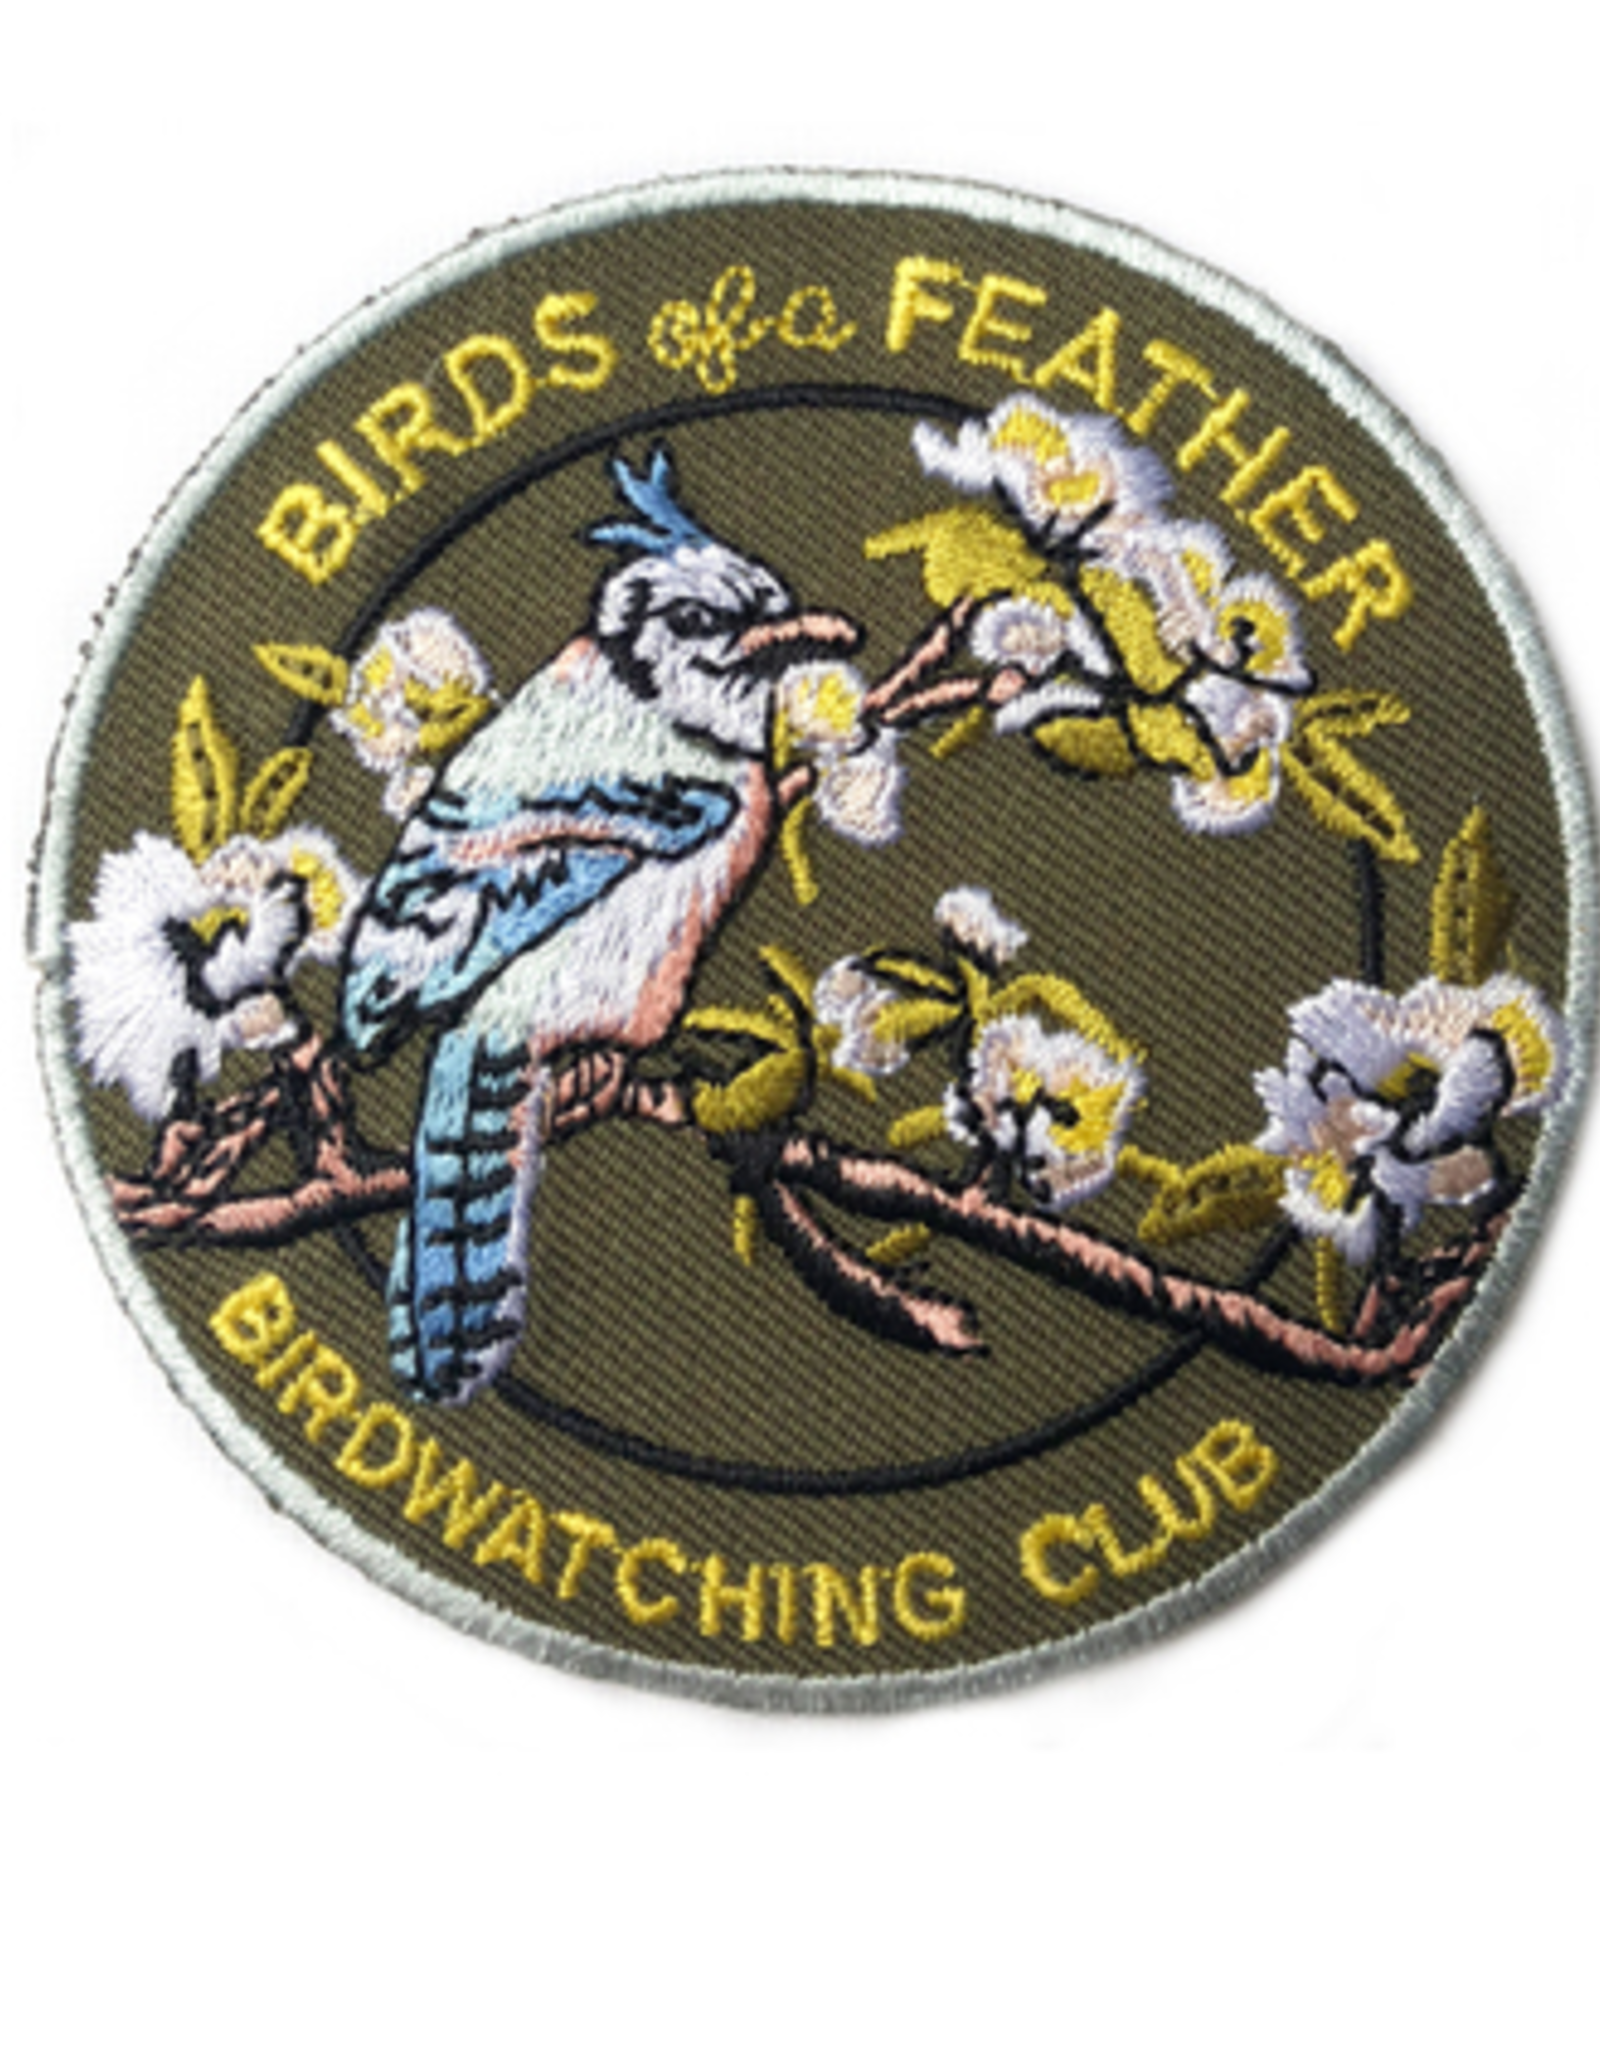 PATCH IRON ON BIRDS OF A FEATHER BIRDWATCHING CLUB